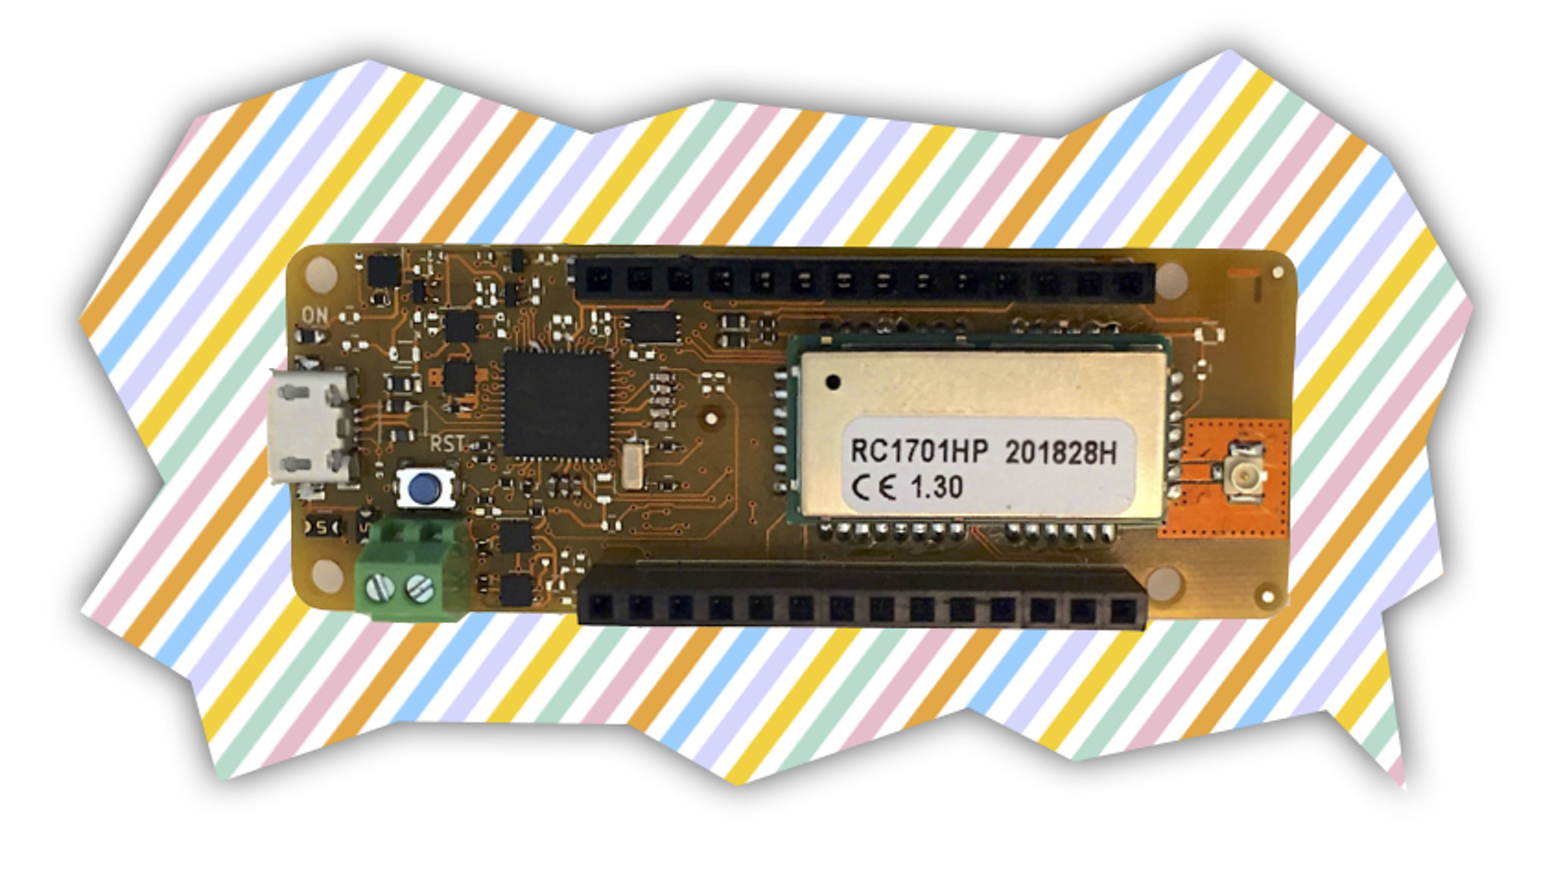 An Arduino compatible board for IoT using the stunning Wize protocol, providing extreme low-power and deep indoor communication.